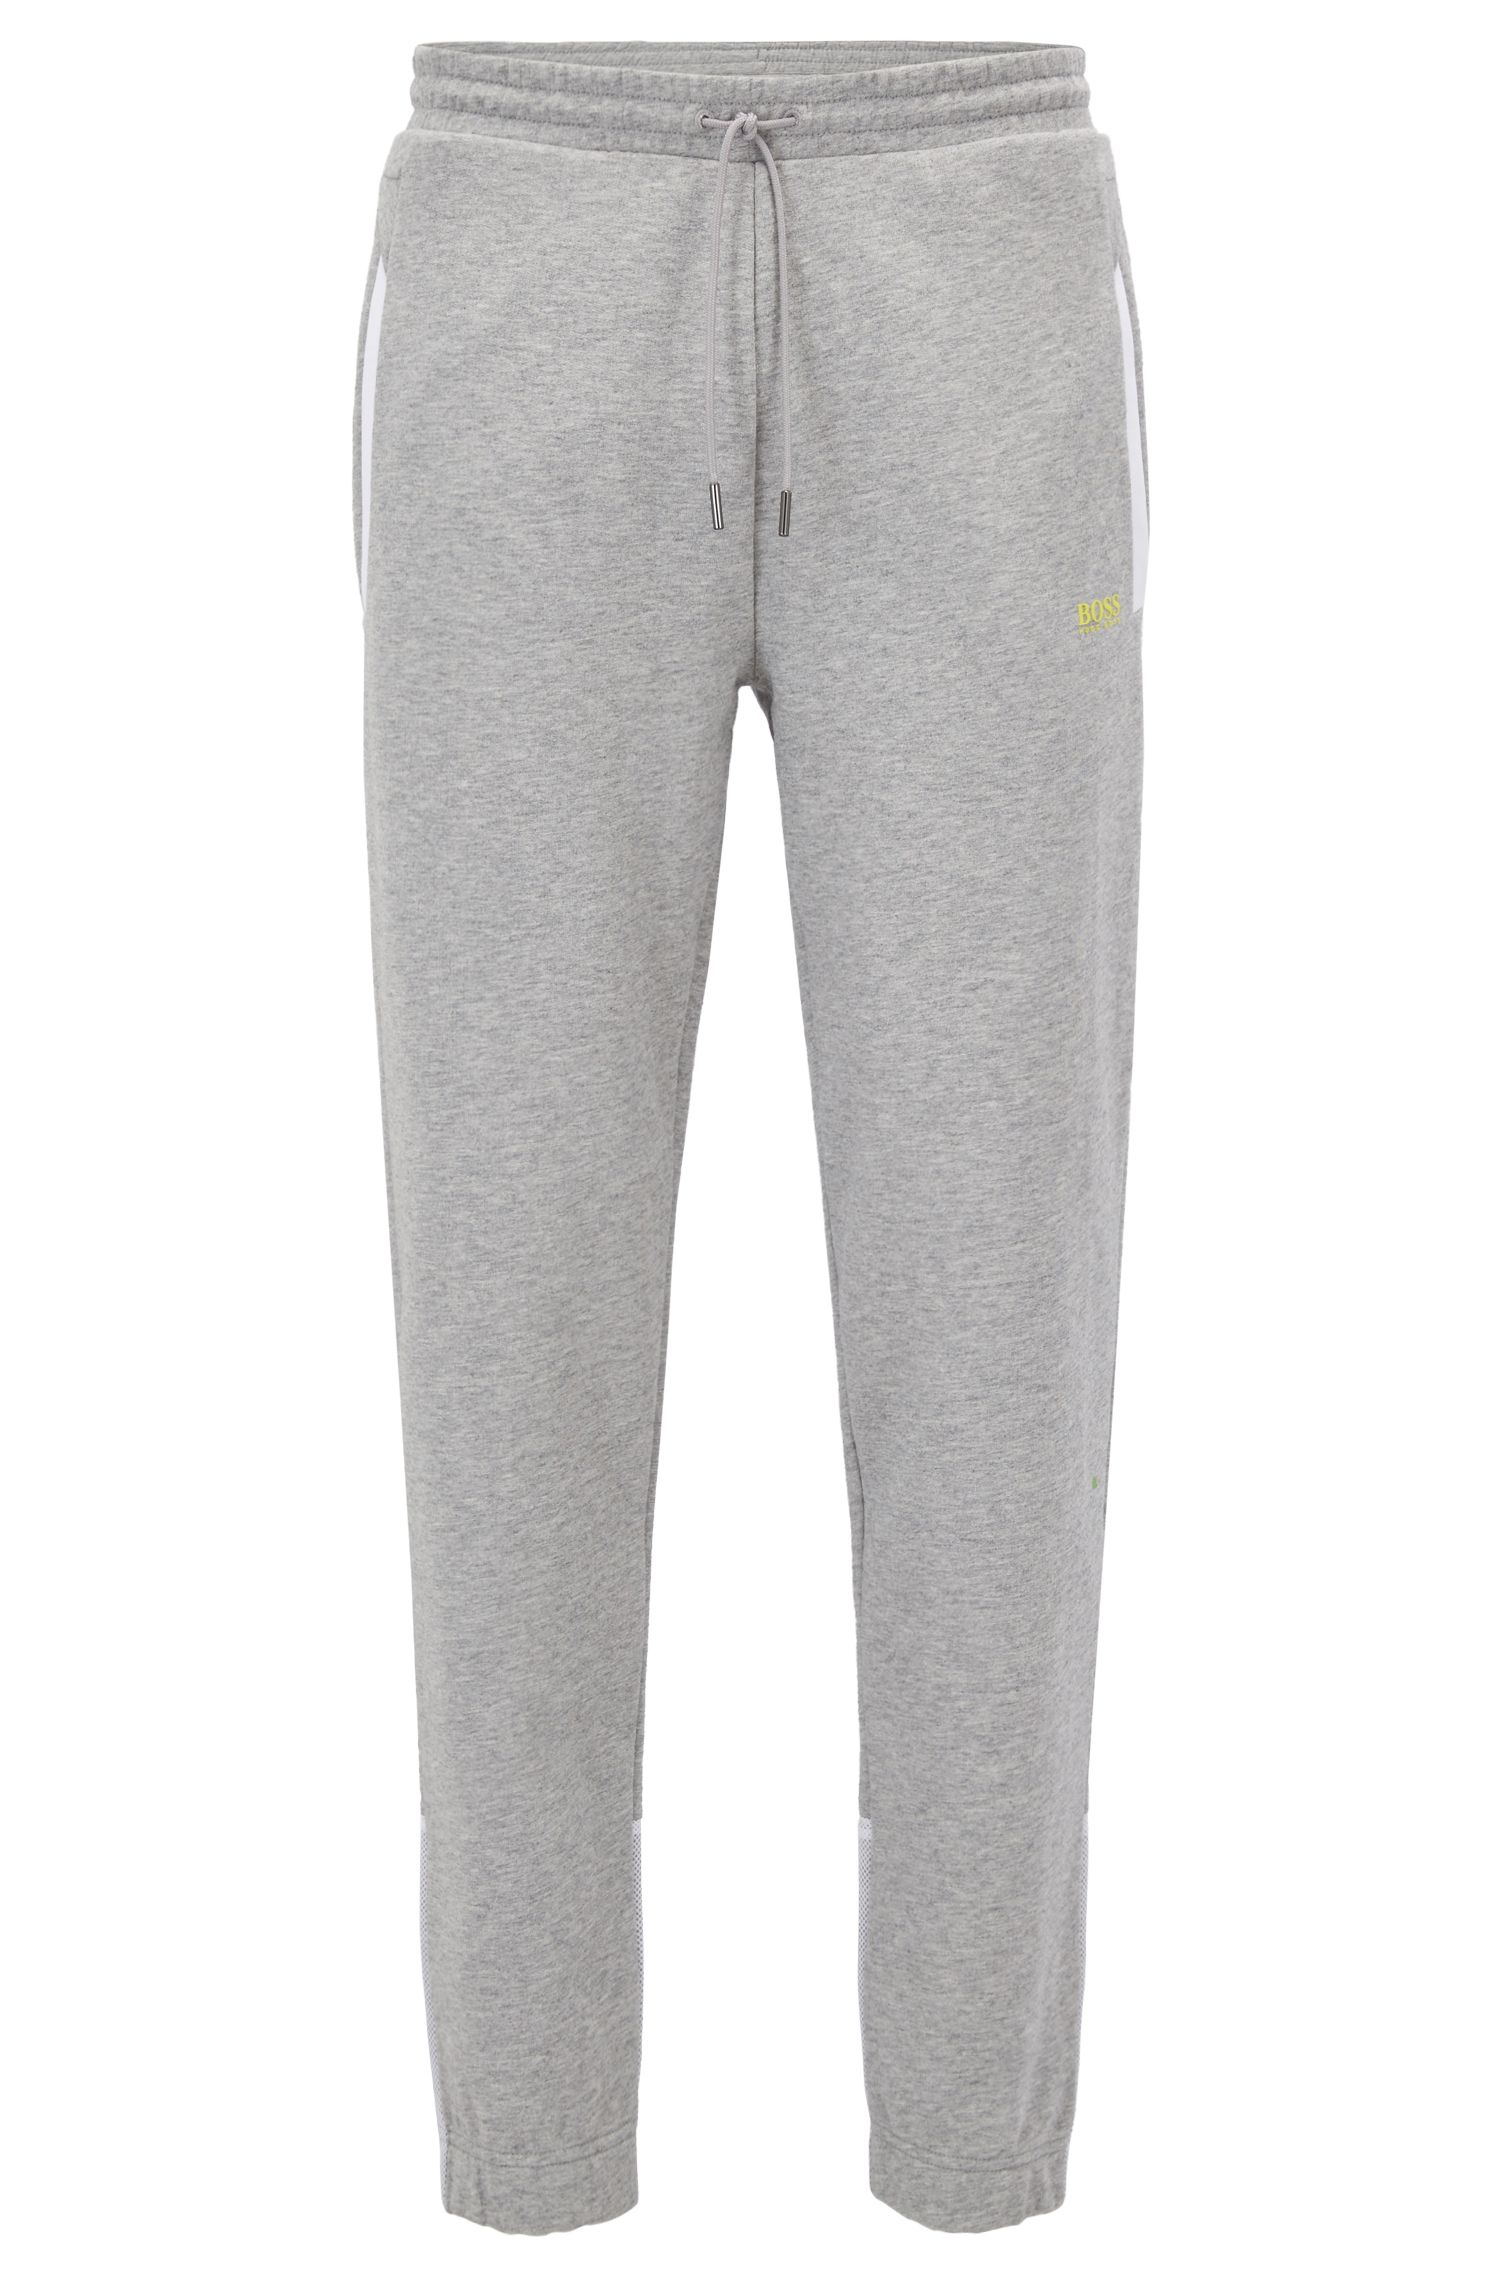 Cotton jogging bottoms with mesh panels